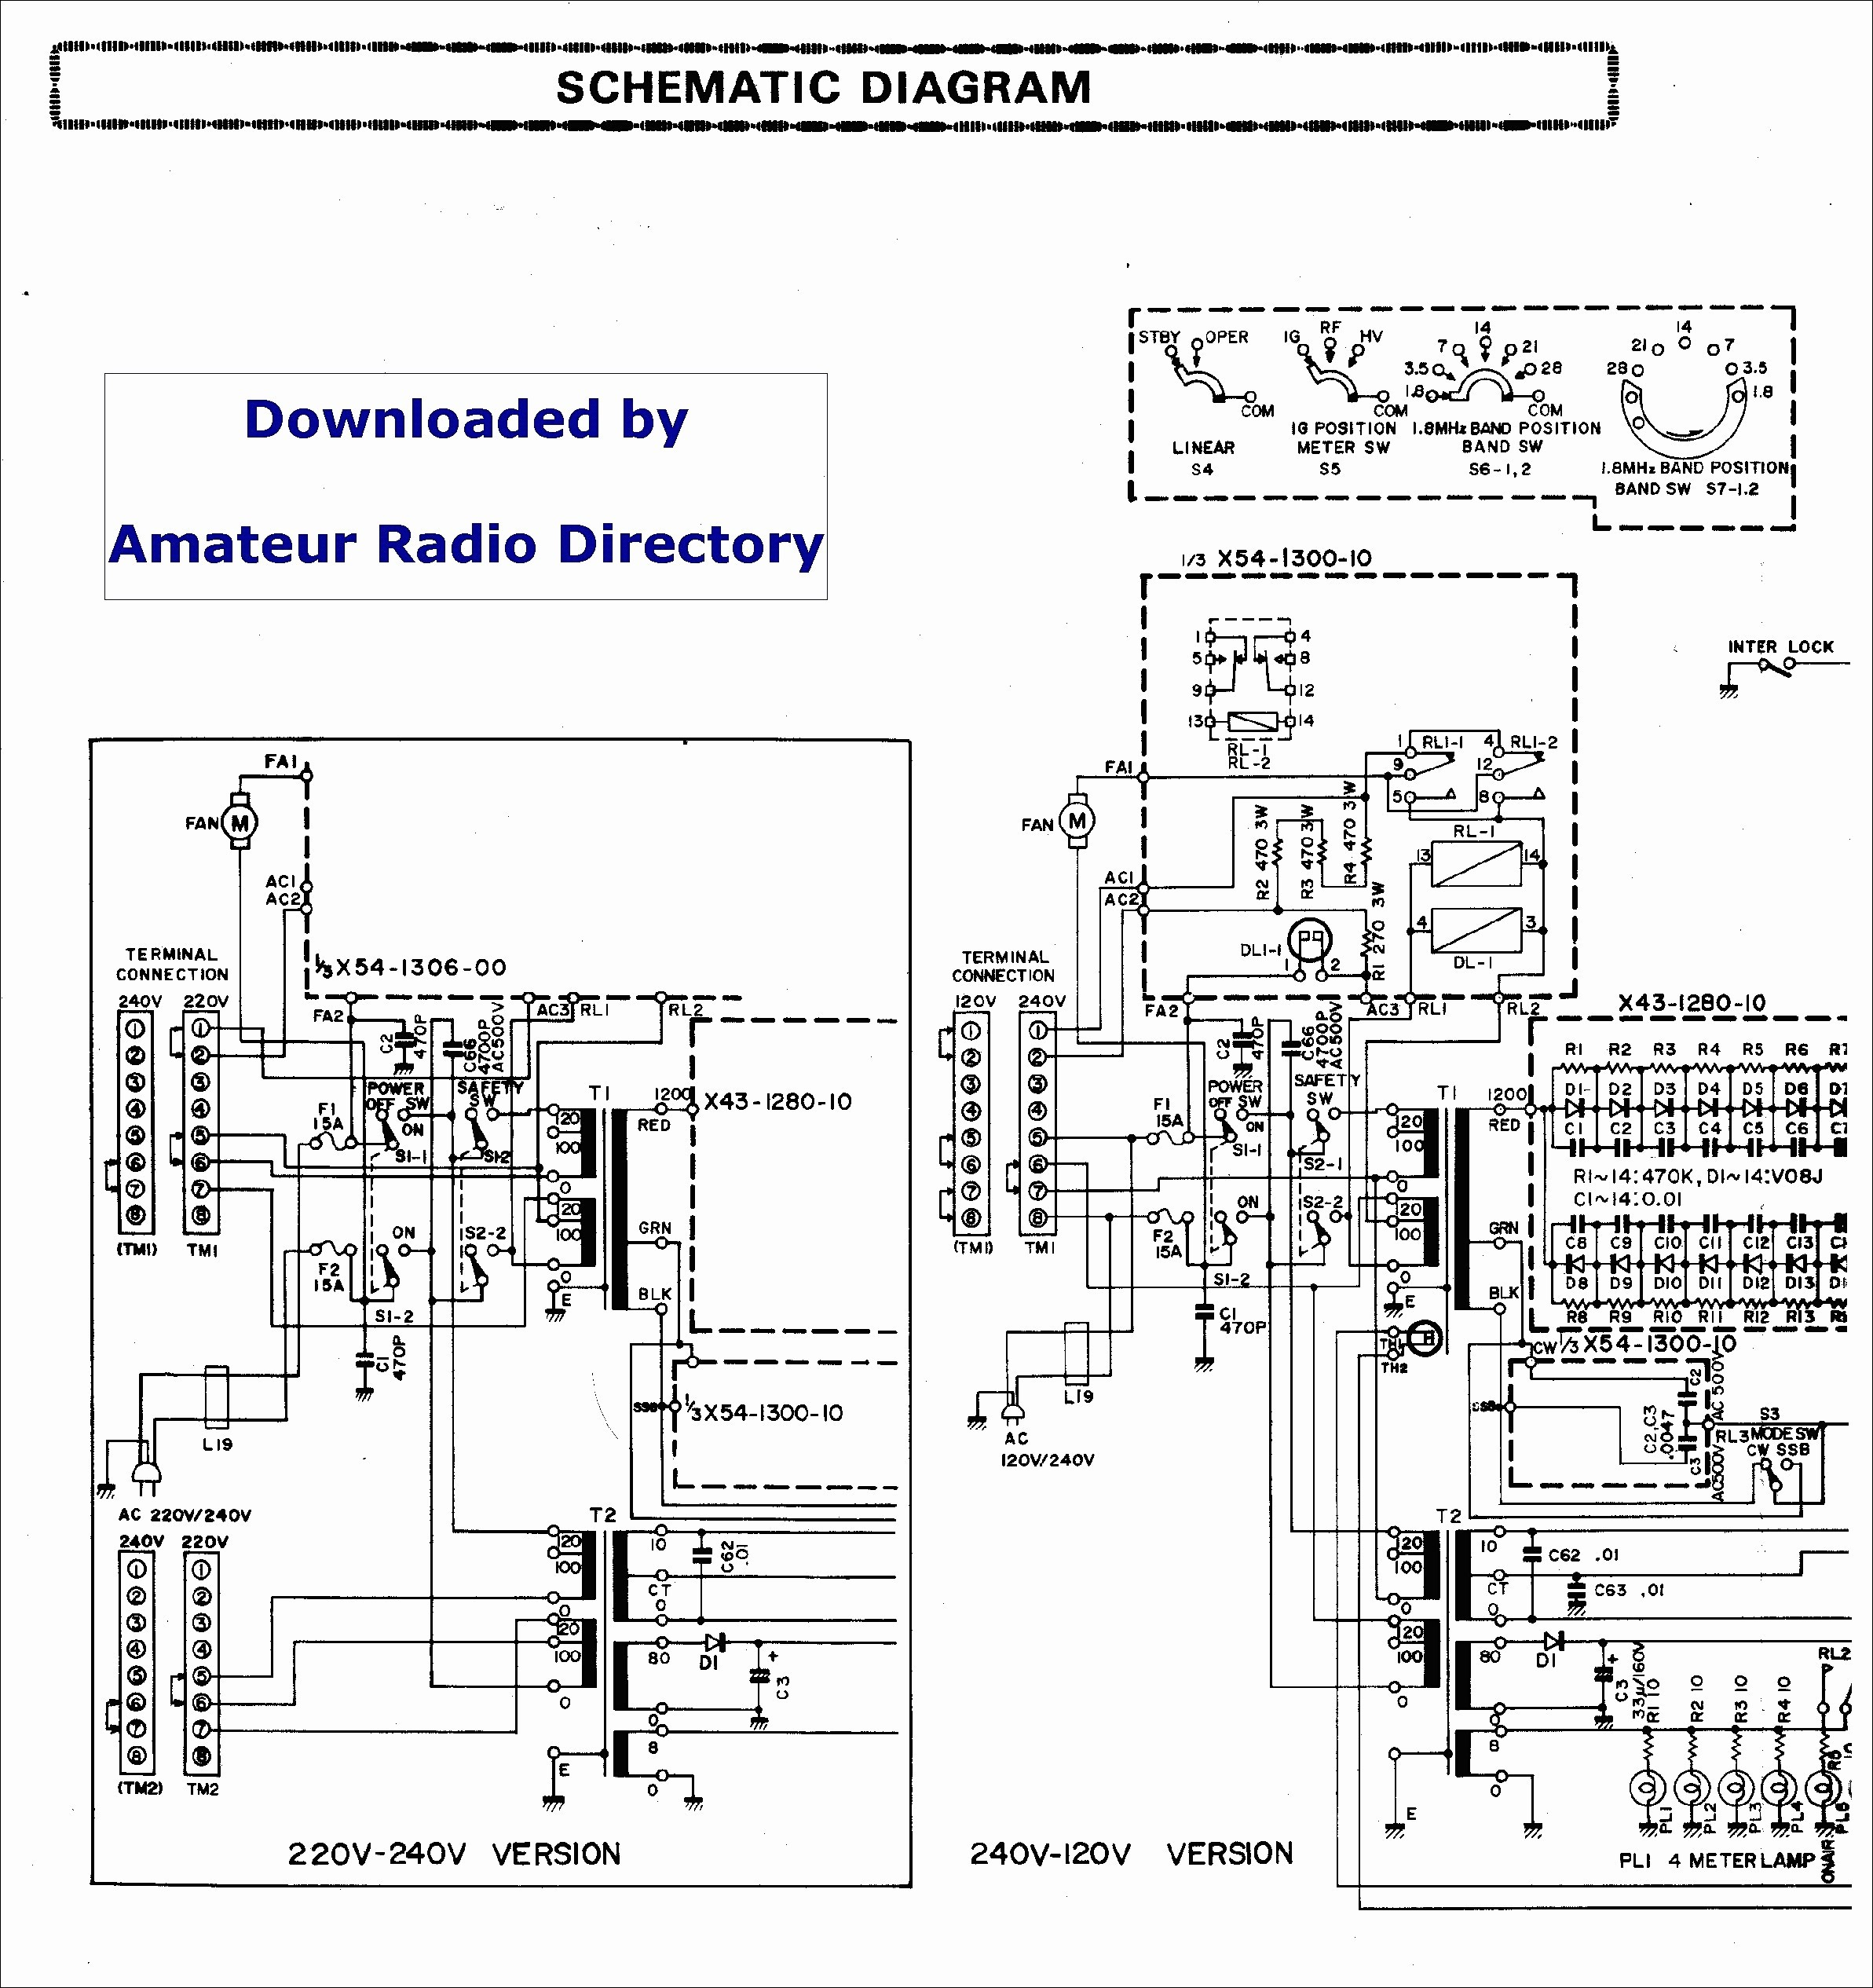 kenwood kdc mp142 wiring diagram book of kenwood kdc 138 Car Stereo Kenwood KDC X395